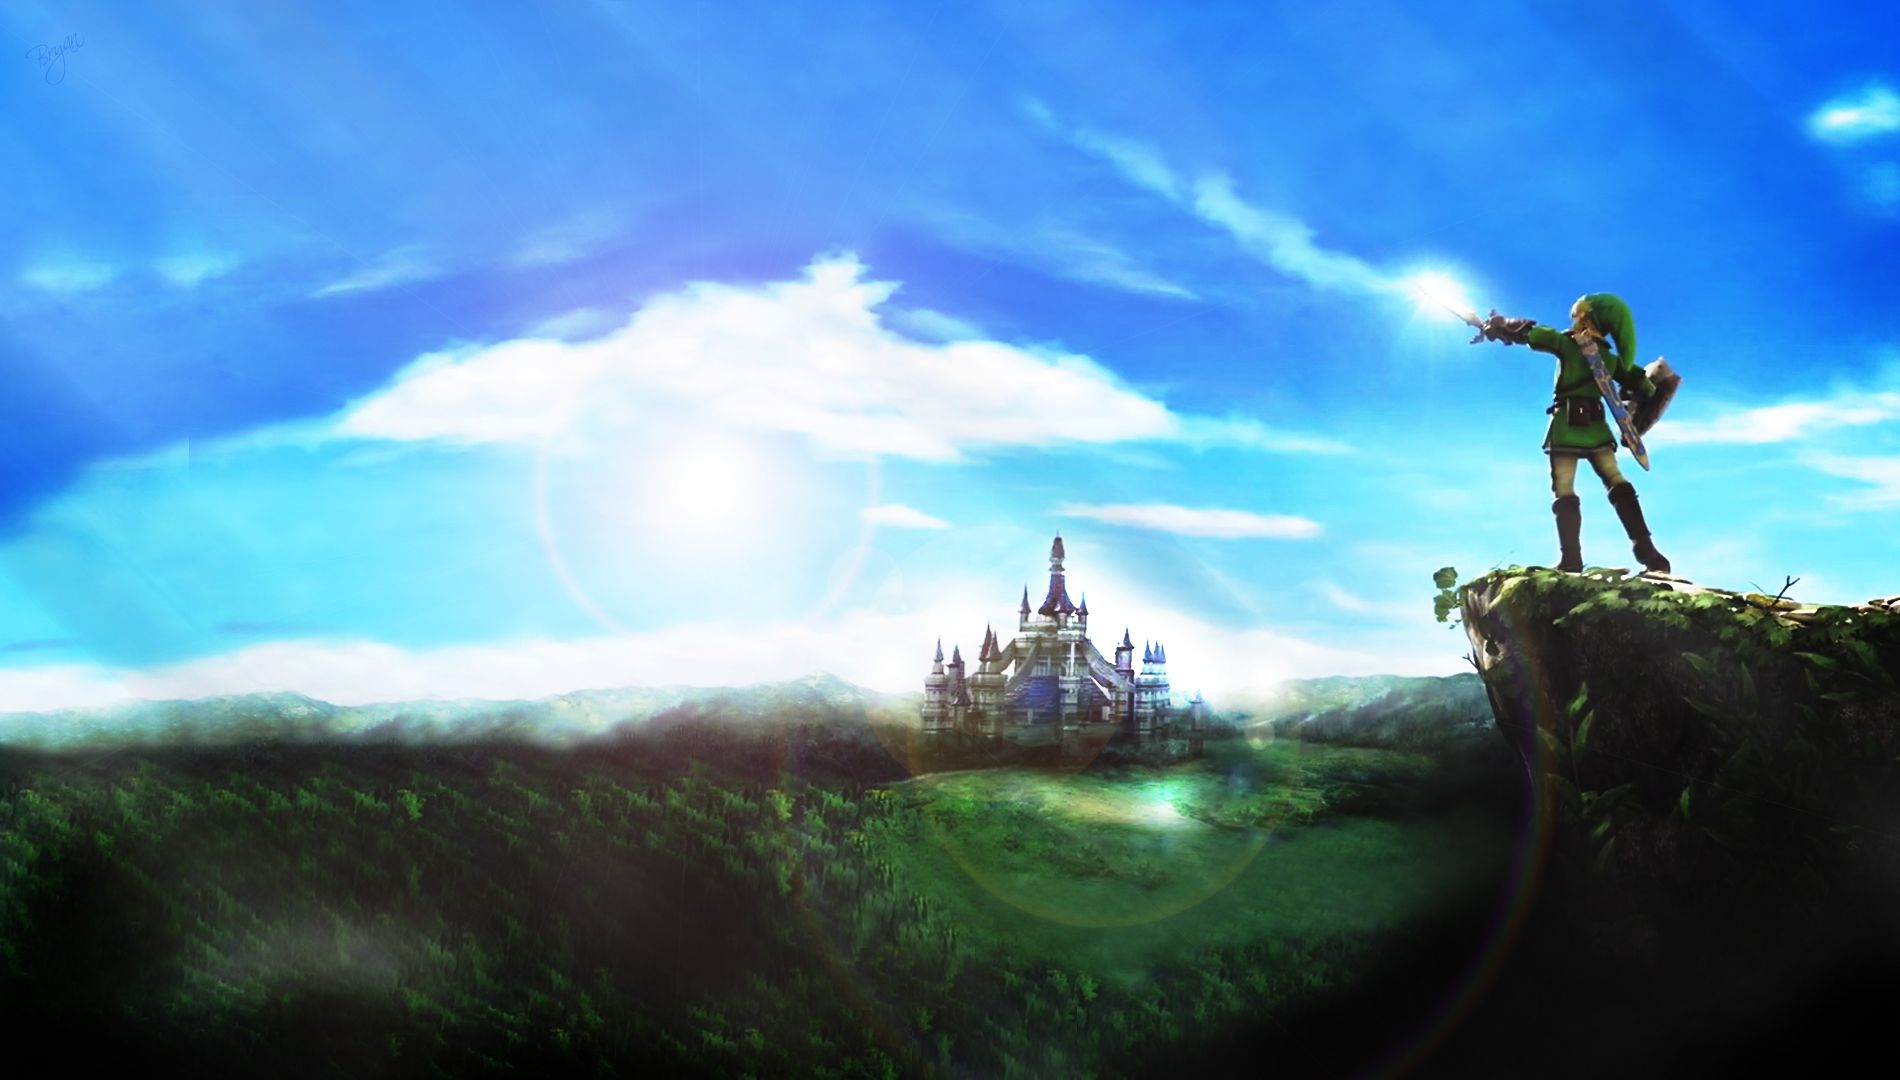 Awesome Zelda Wallpapers   Top Awesome Zelda Backgrounds 1900x1080